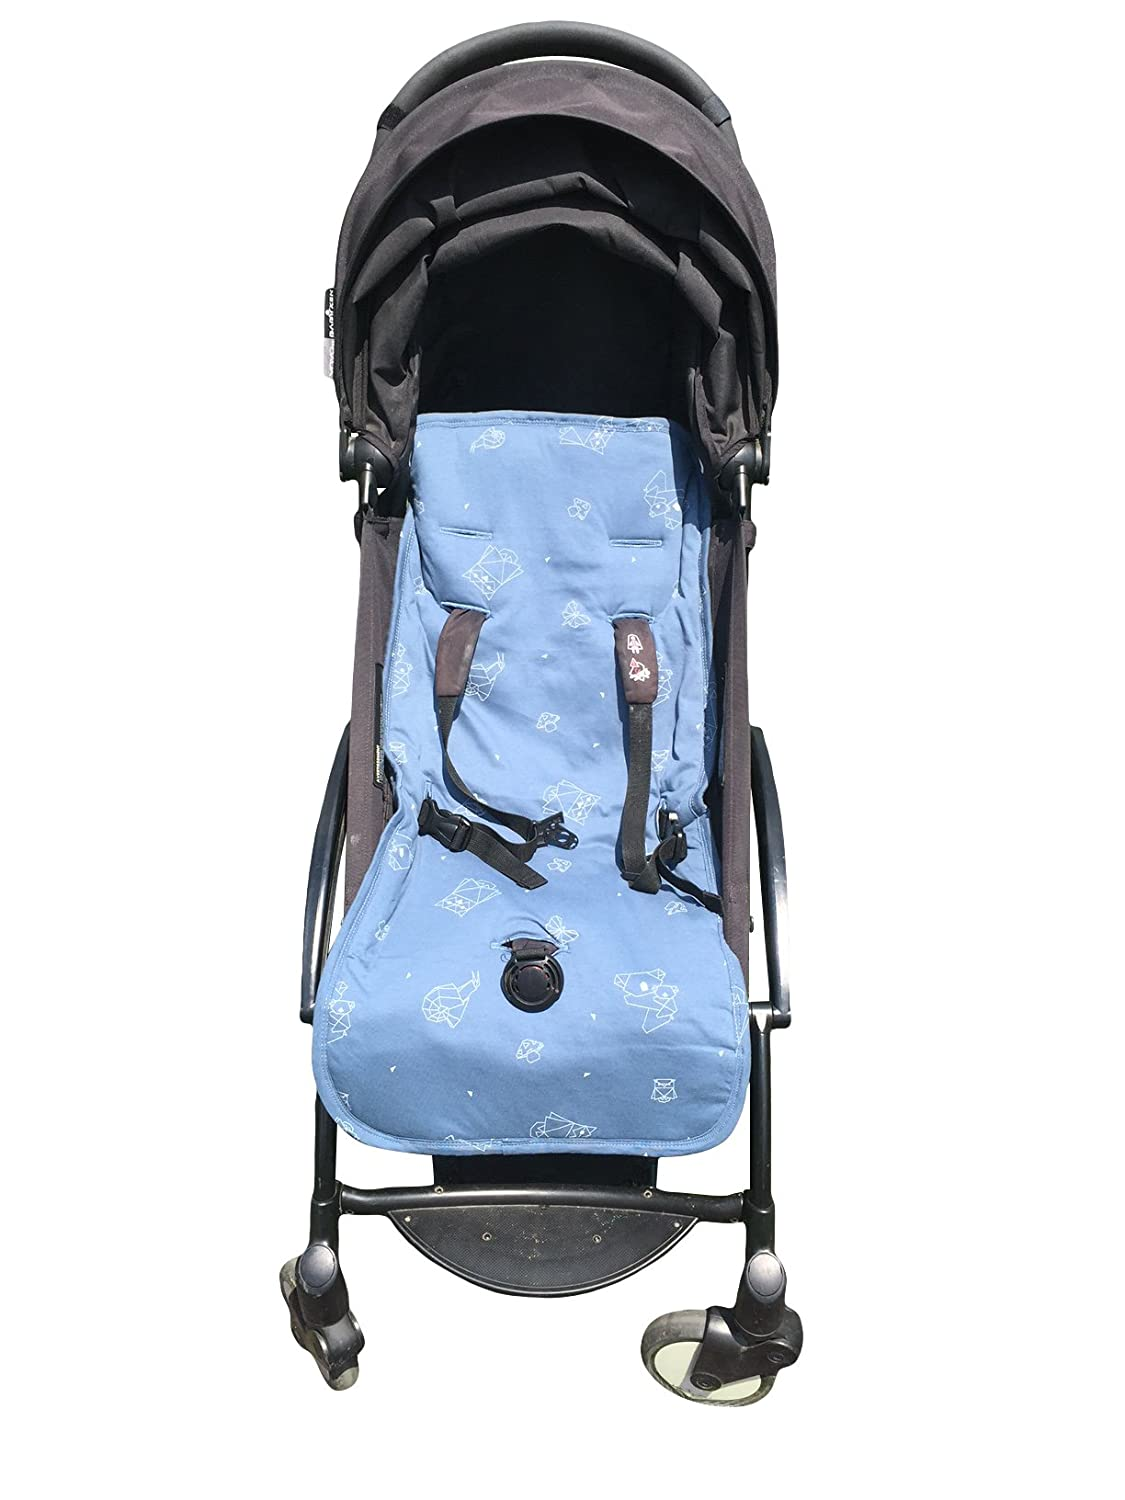 Organic Cotton Stroller Liner - Extra-Soft, Breathable Cover with Soft, Synthetic Fiber Filling. Total Comfort for Baby and Toddler. Machine Washable, 31x15 inches, Off Black Kookoolon